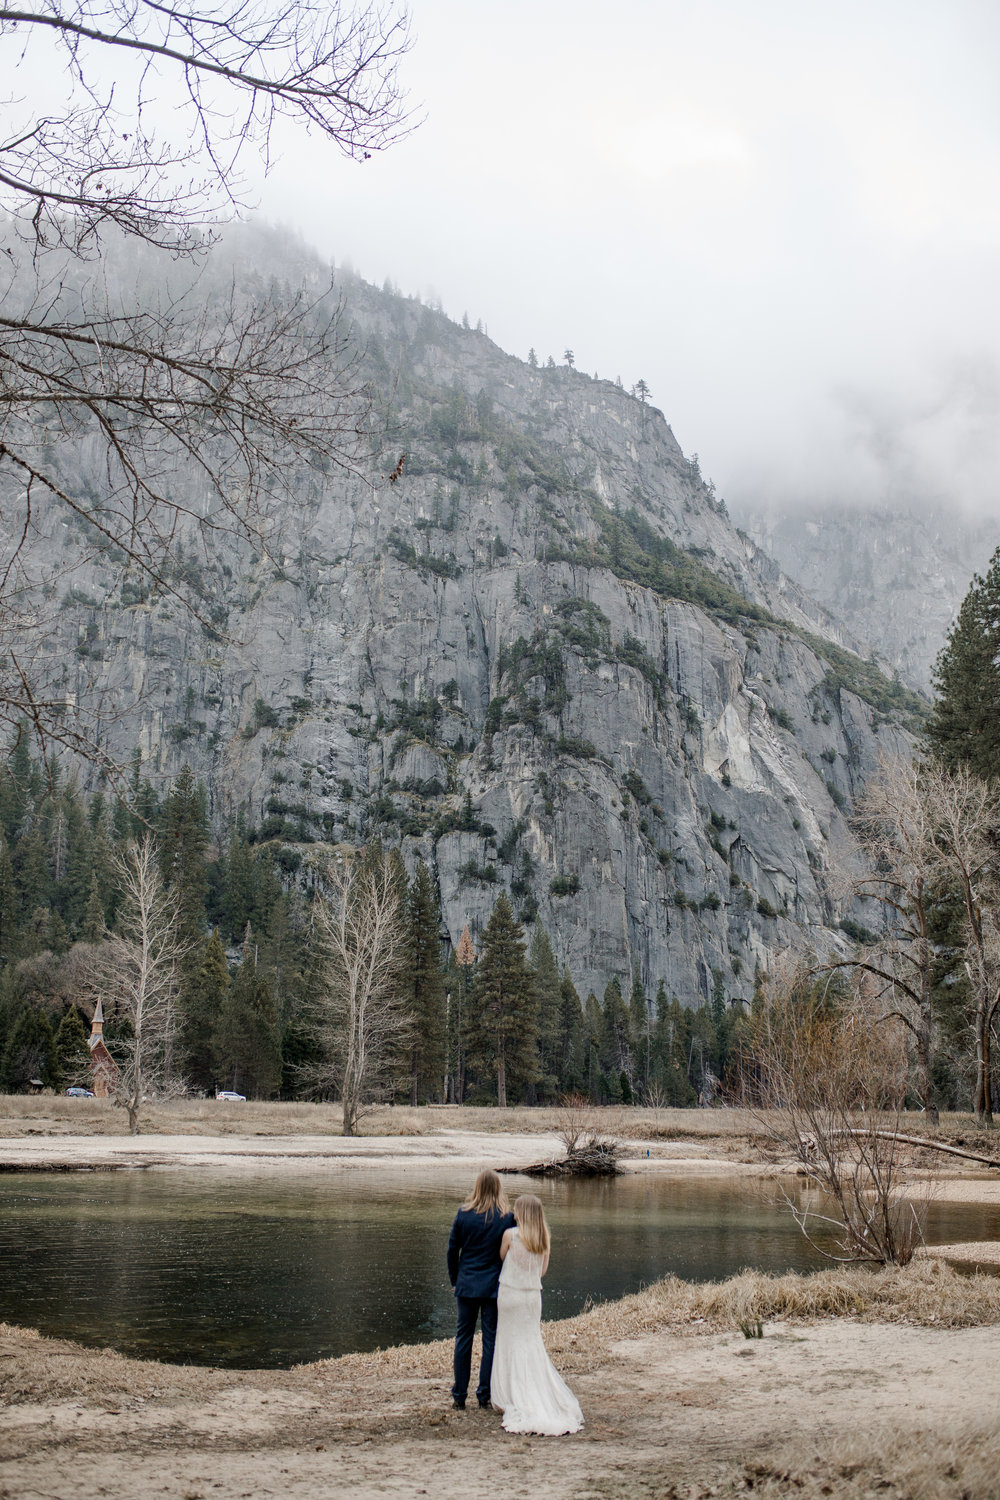 nicole-daacke-photography-yousemite-national-park-elopement-photographer-winter-cloud-moody-elope-inspiration-yosemite-valley-tunnel-view-winter-cloud-fog-weather-wedding-photos-29.jpg